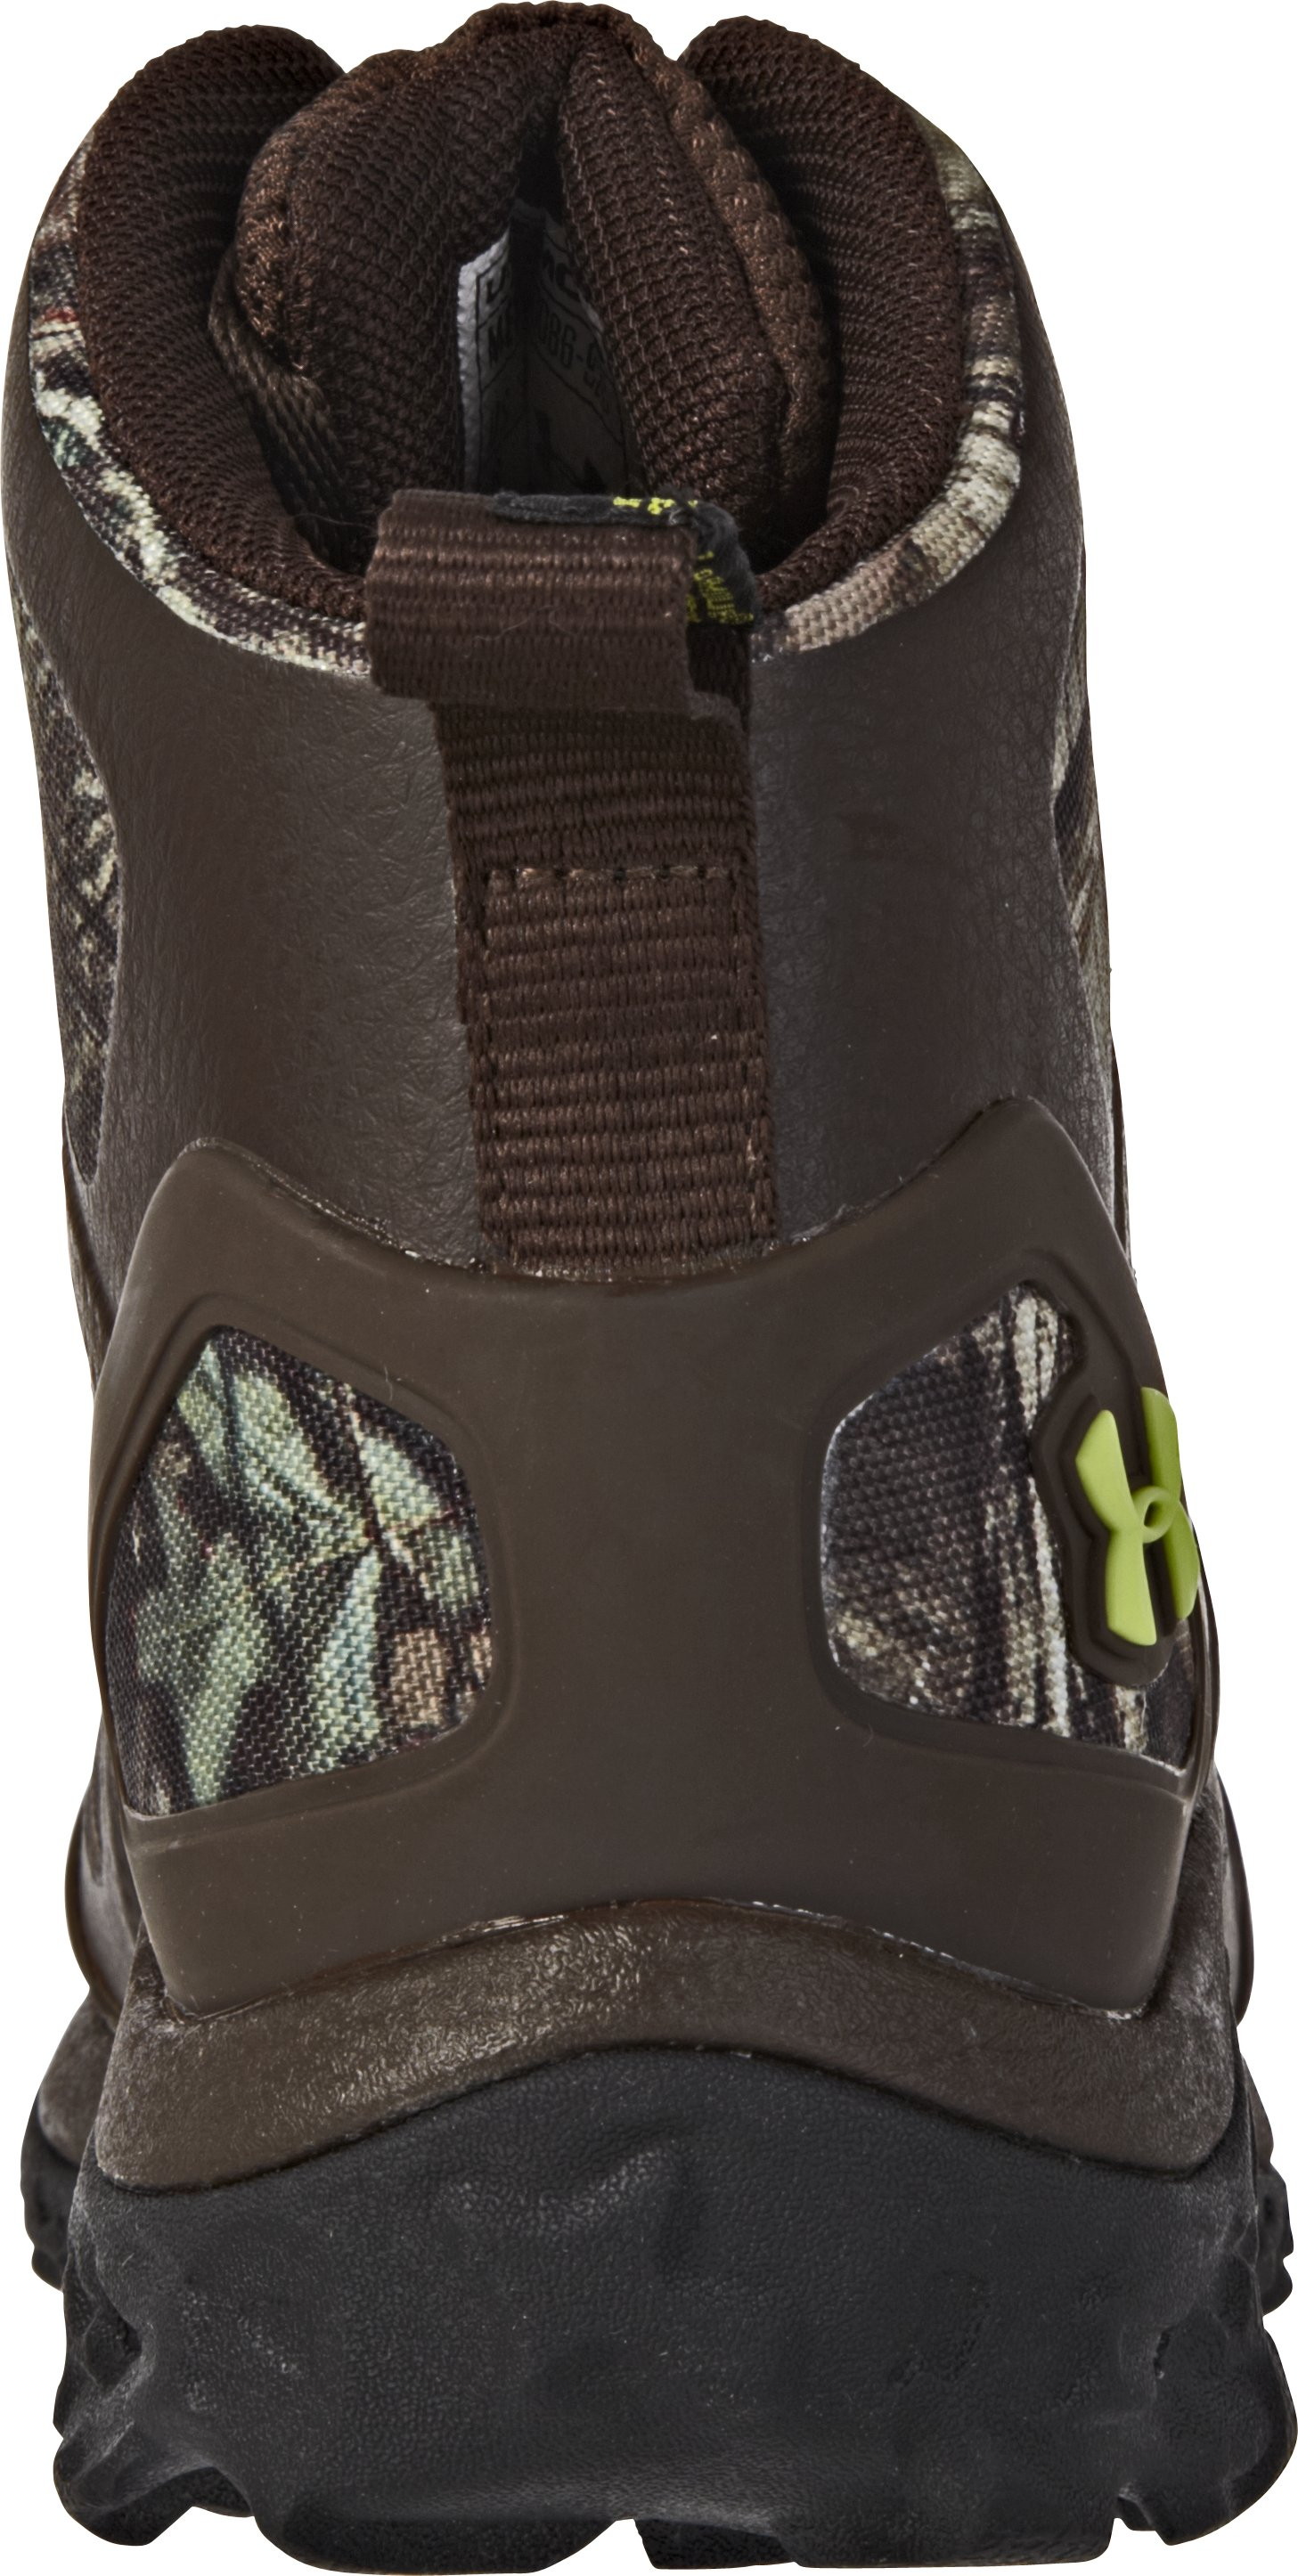 Men's UA Speed Freek Chaos Hunting Boots, Mossy Oak Break-Up Infinity